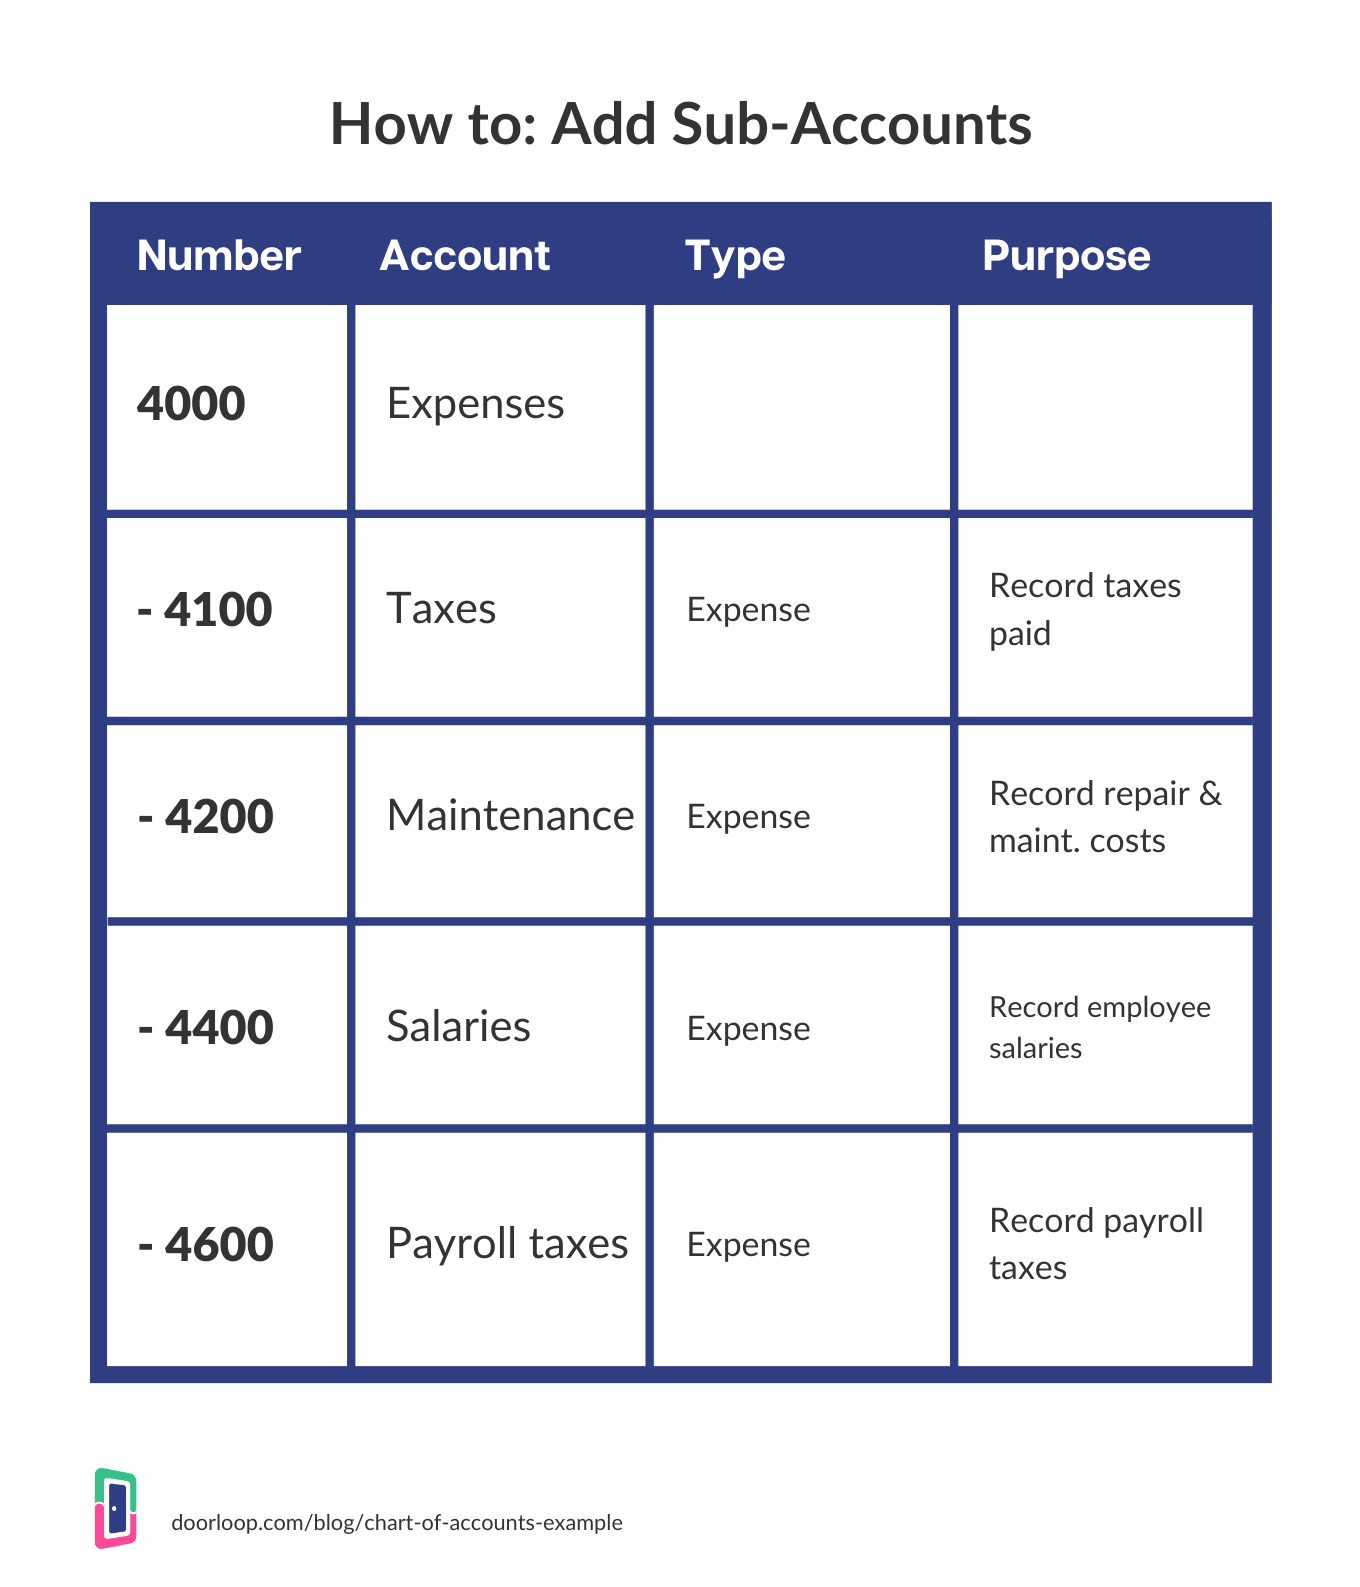 how to add sub-accounts